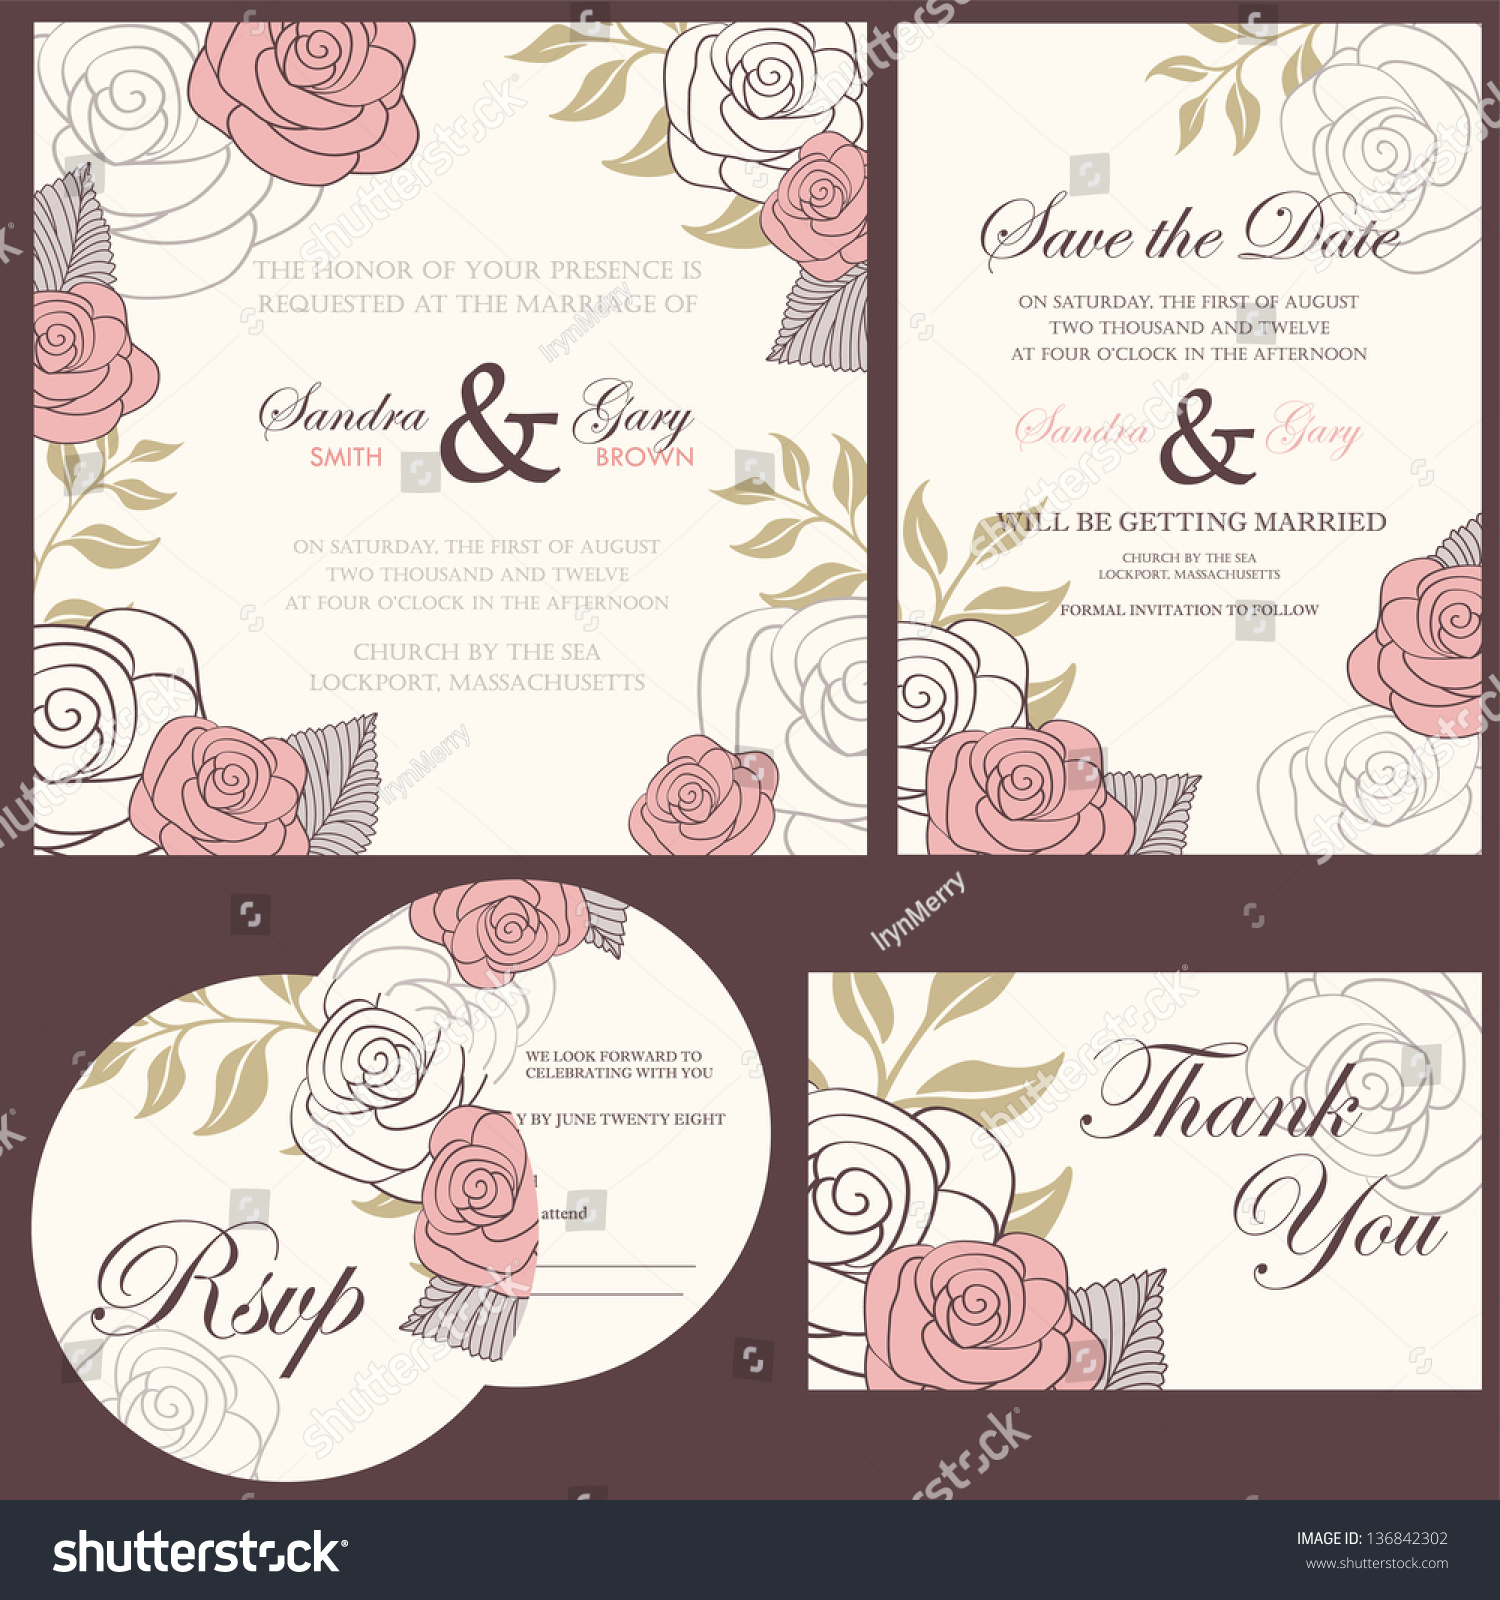 Wedding Invitation Cards Set Thank You Card Save The Date RSVP